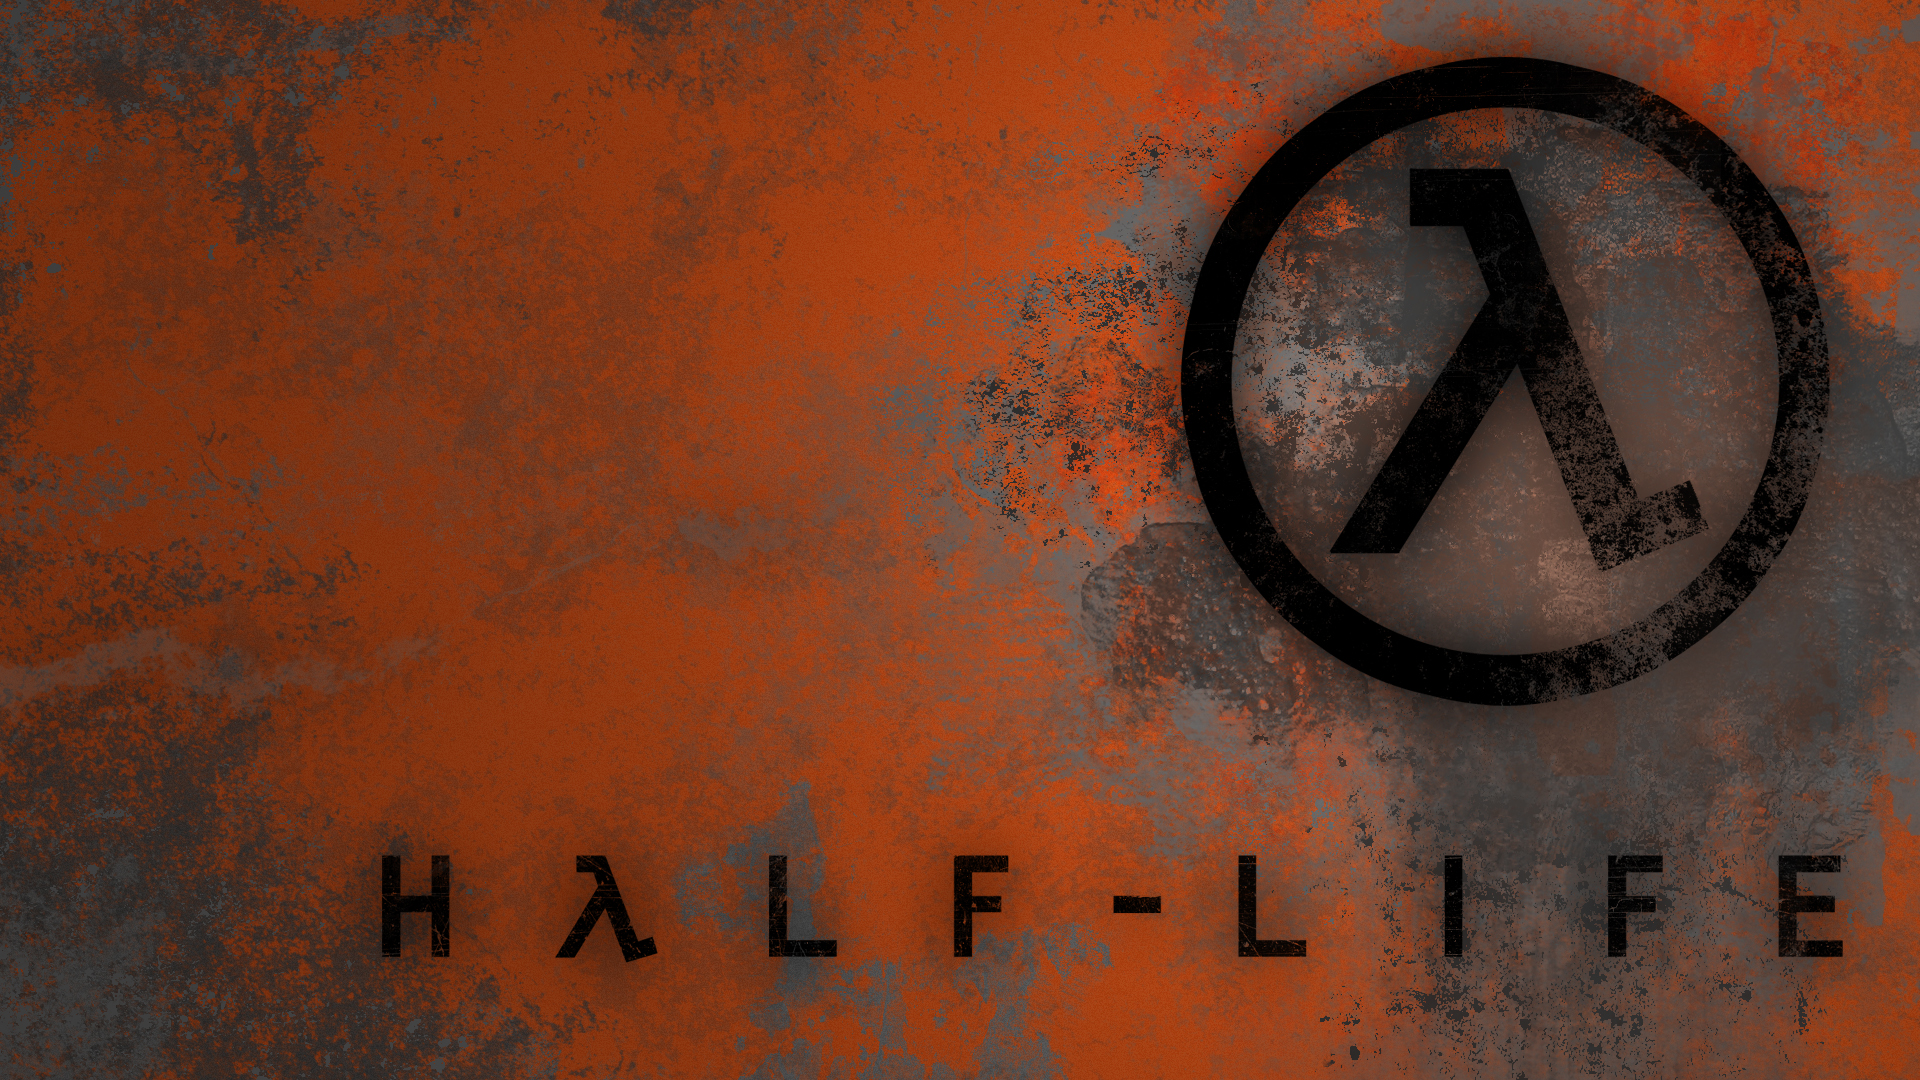 Half life 1080p wallpaper by caboose6789 d3ikf70 1920x1080